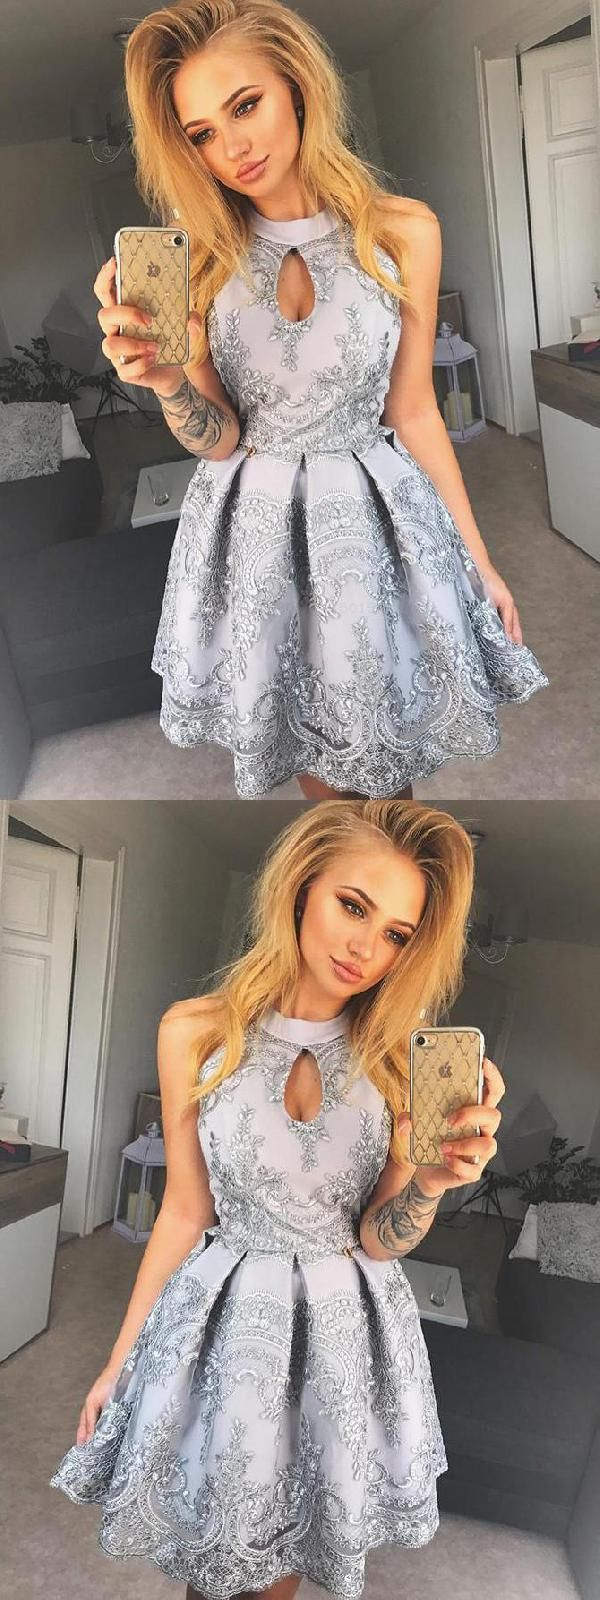 Outlet nice homecoming dress short homecoming dress vintage silver